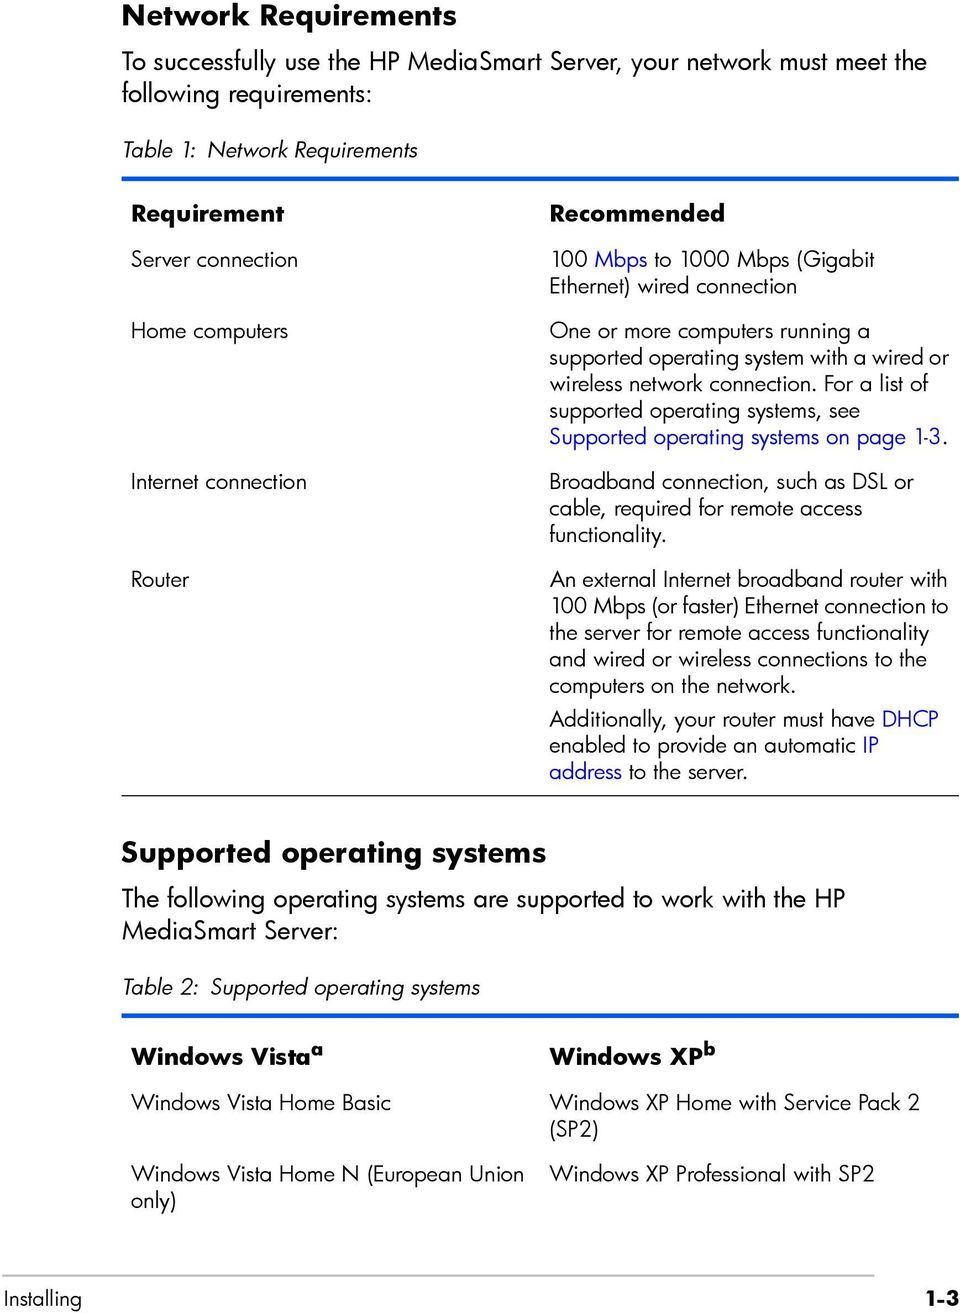 For a list of supported operating systems, see Supported operating systems on page 1-3. Broadband connection, such as DSL or cable, required for remote access functionality.